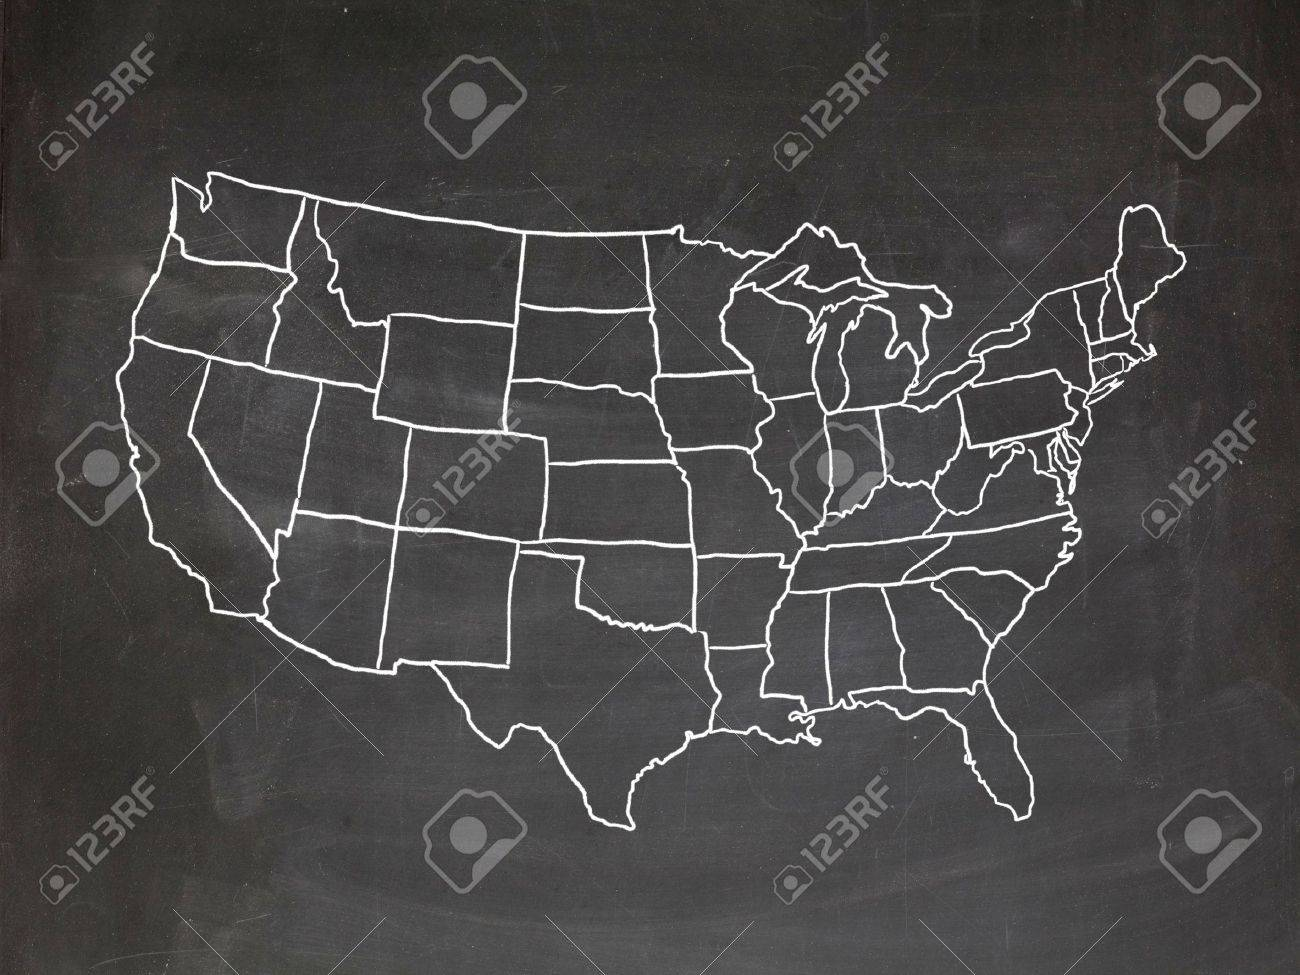 Map Of The US Drawn On A Chalkboard Stock Photo Picture And - How to free hand a map of the us